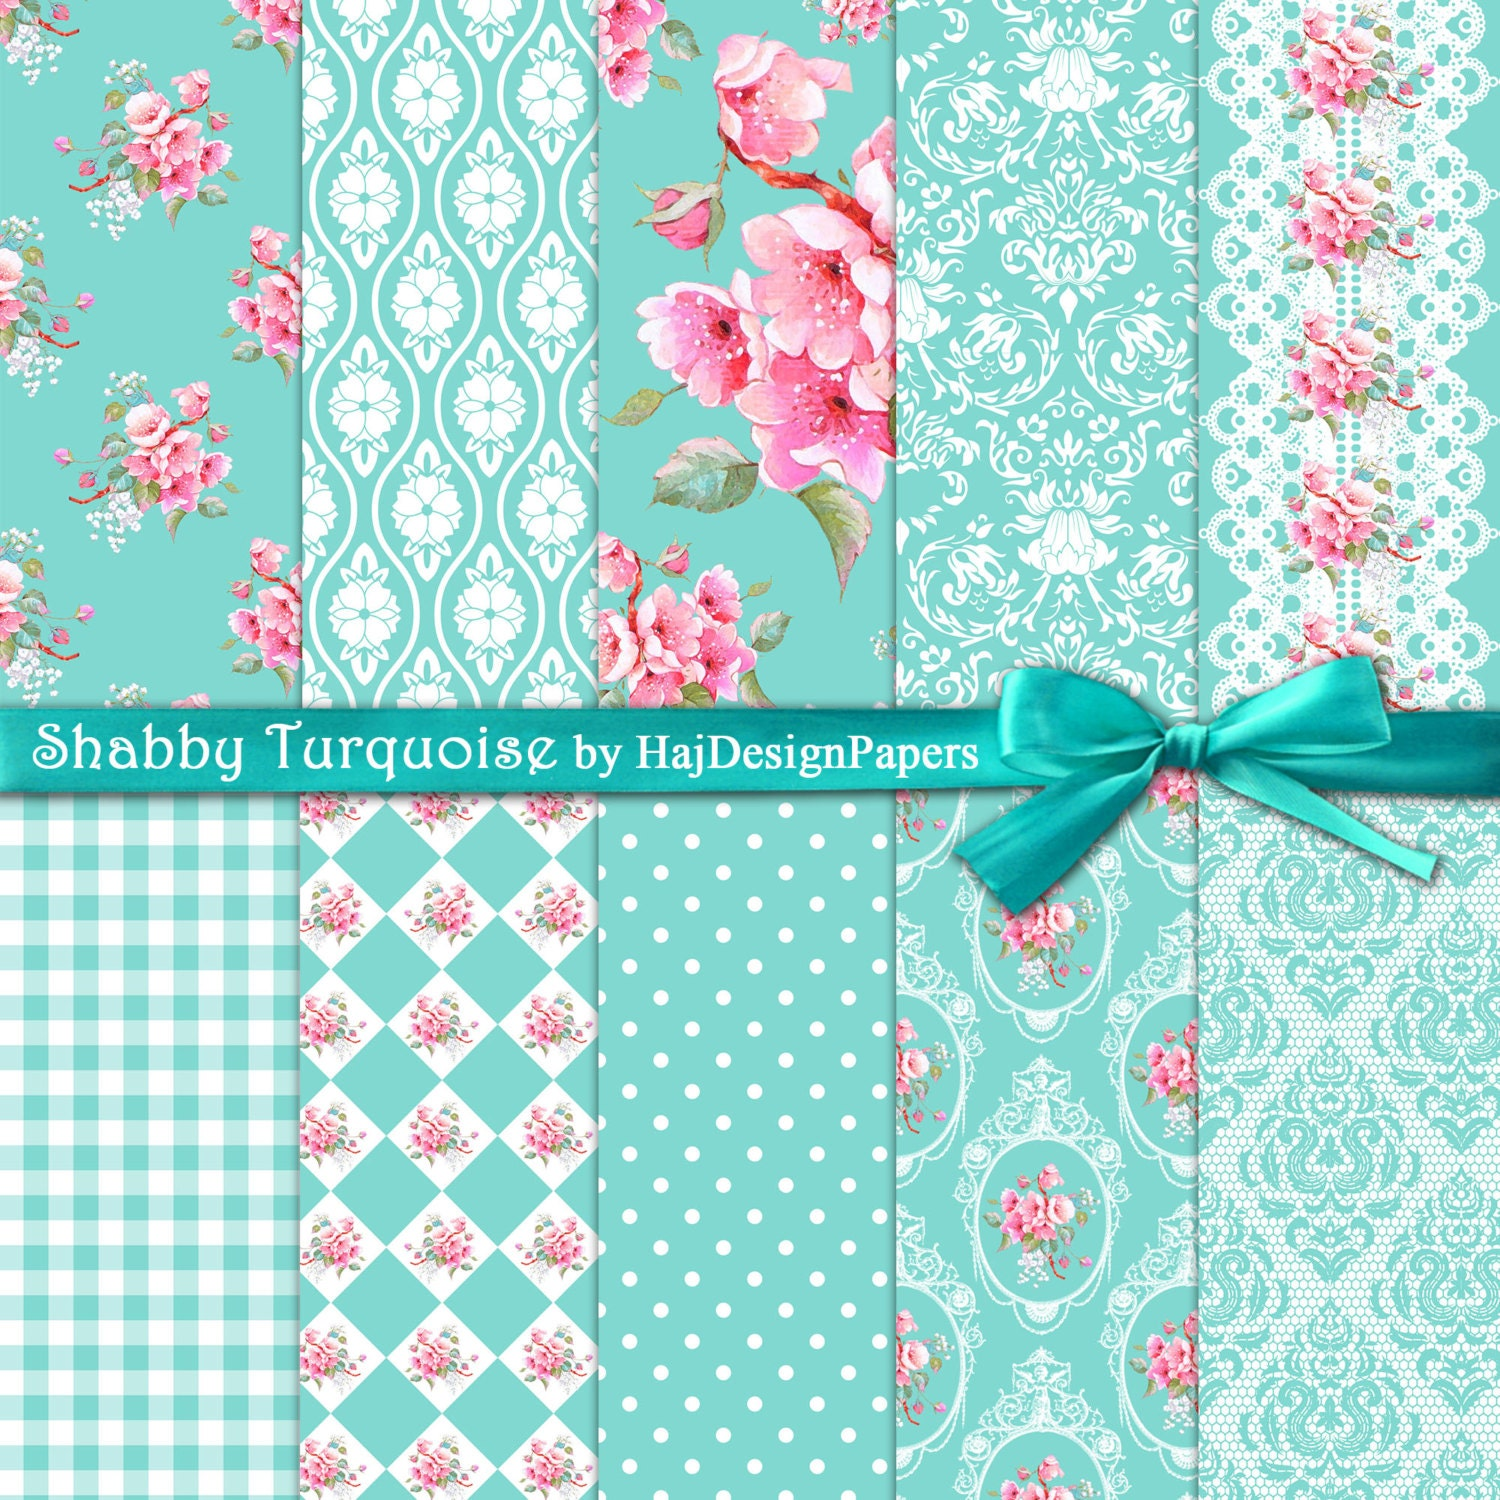 Turquoise Shabby Chic Bedrooms: Shabby Chic Digital Paper : Shabby Turquoise Teal